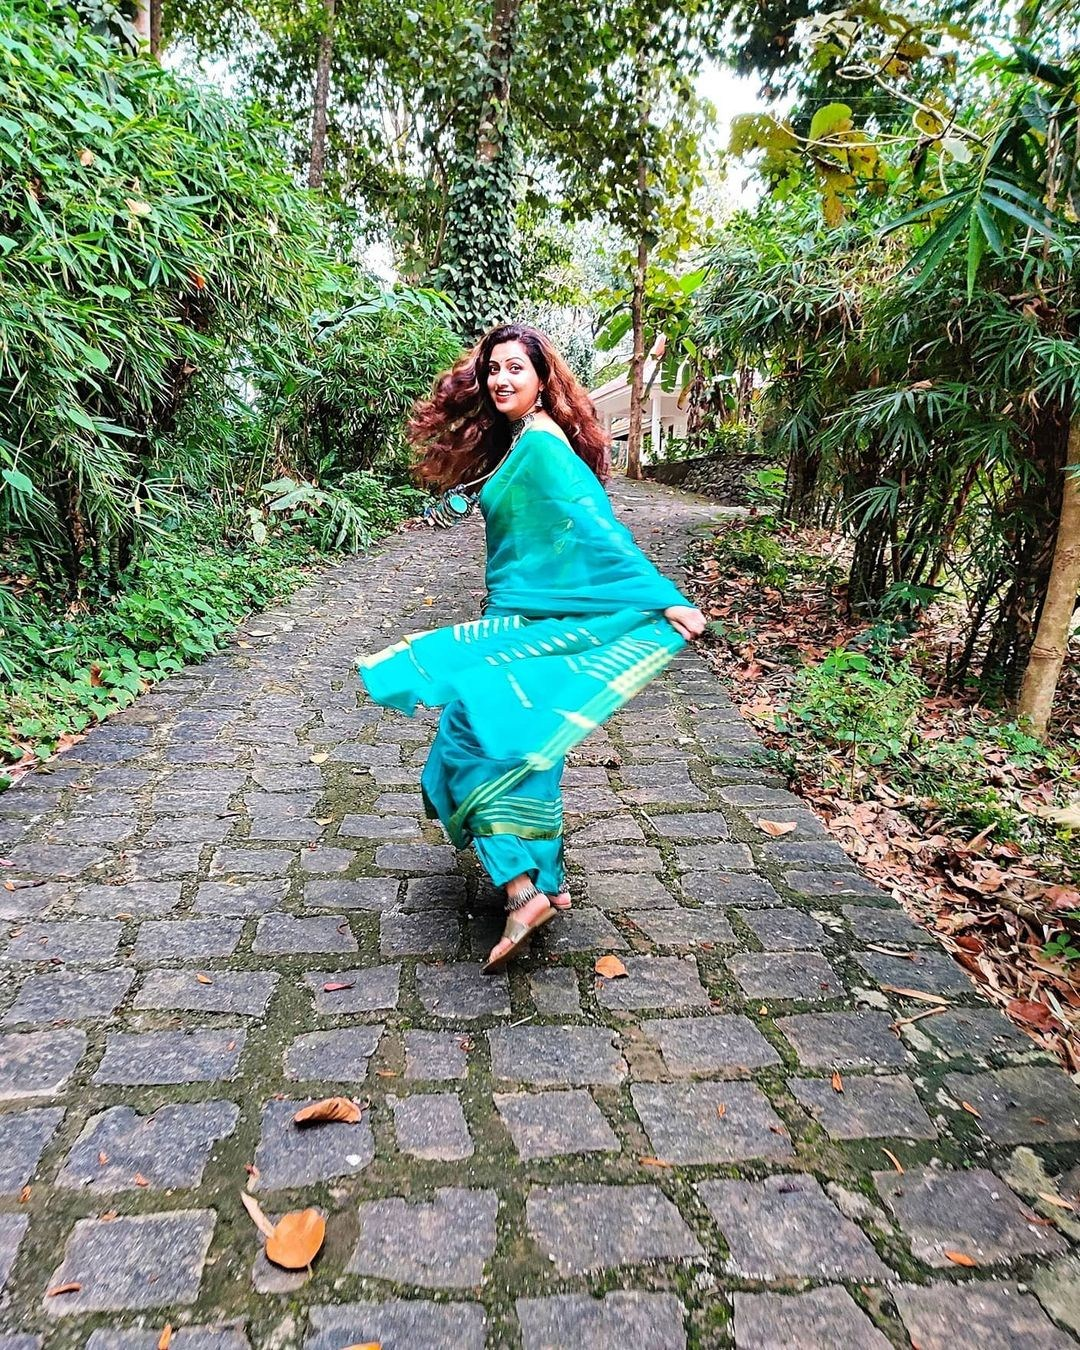 Tollywood celebrity hamsa nandini latest images-Telugu Actress Hamsa Nandini, Hamsa Nandini, Hamsa Nandini Latest Images, Hamsa Nandini Latest Photos, Hamsa Nandini Latest Pics, Hamsa Nandini Latest Telugu News, Hamsa Nandini New Images, Hamsa Nandini New Photos, Hamsa Nandini Stunning Images, Hamsa Nandini Telugu News, Images, Tollywood Celebrity Hamsa Nandini Latest Images Photos,Spicy Hot Pics,Images,High Resolution WallPapers Download